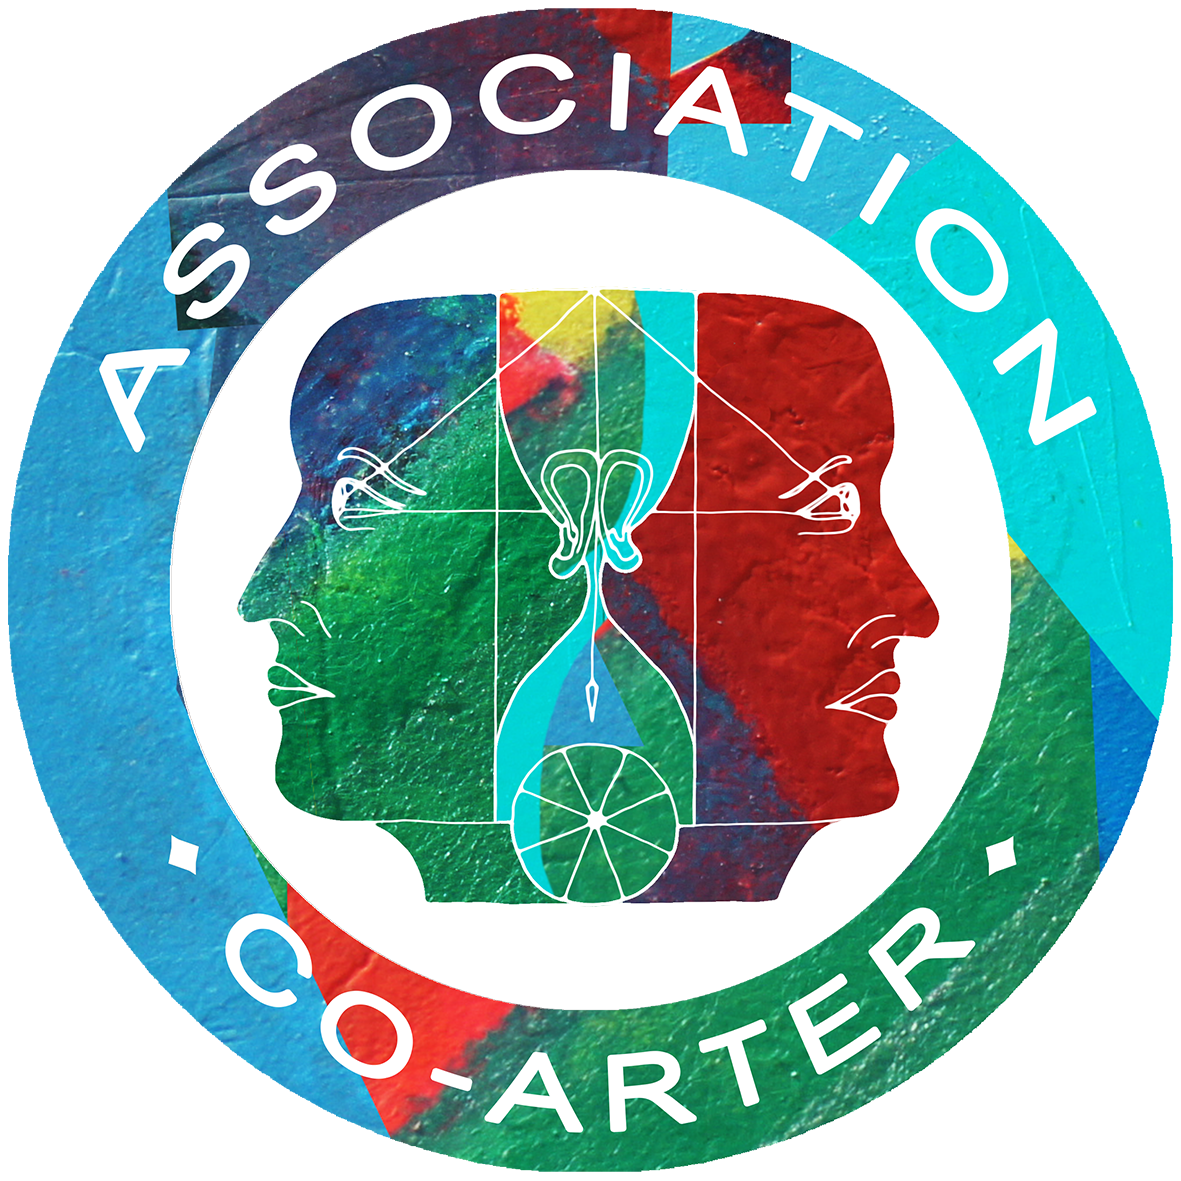 Association Co Arter